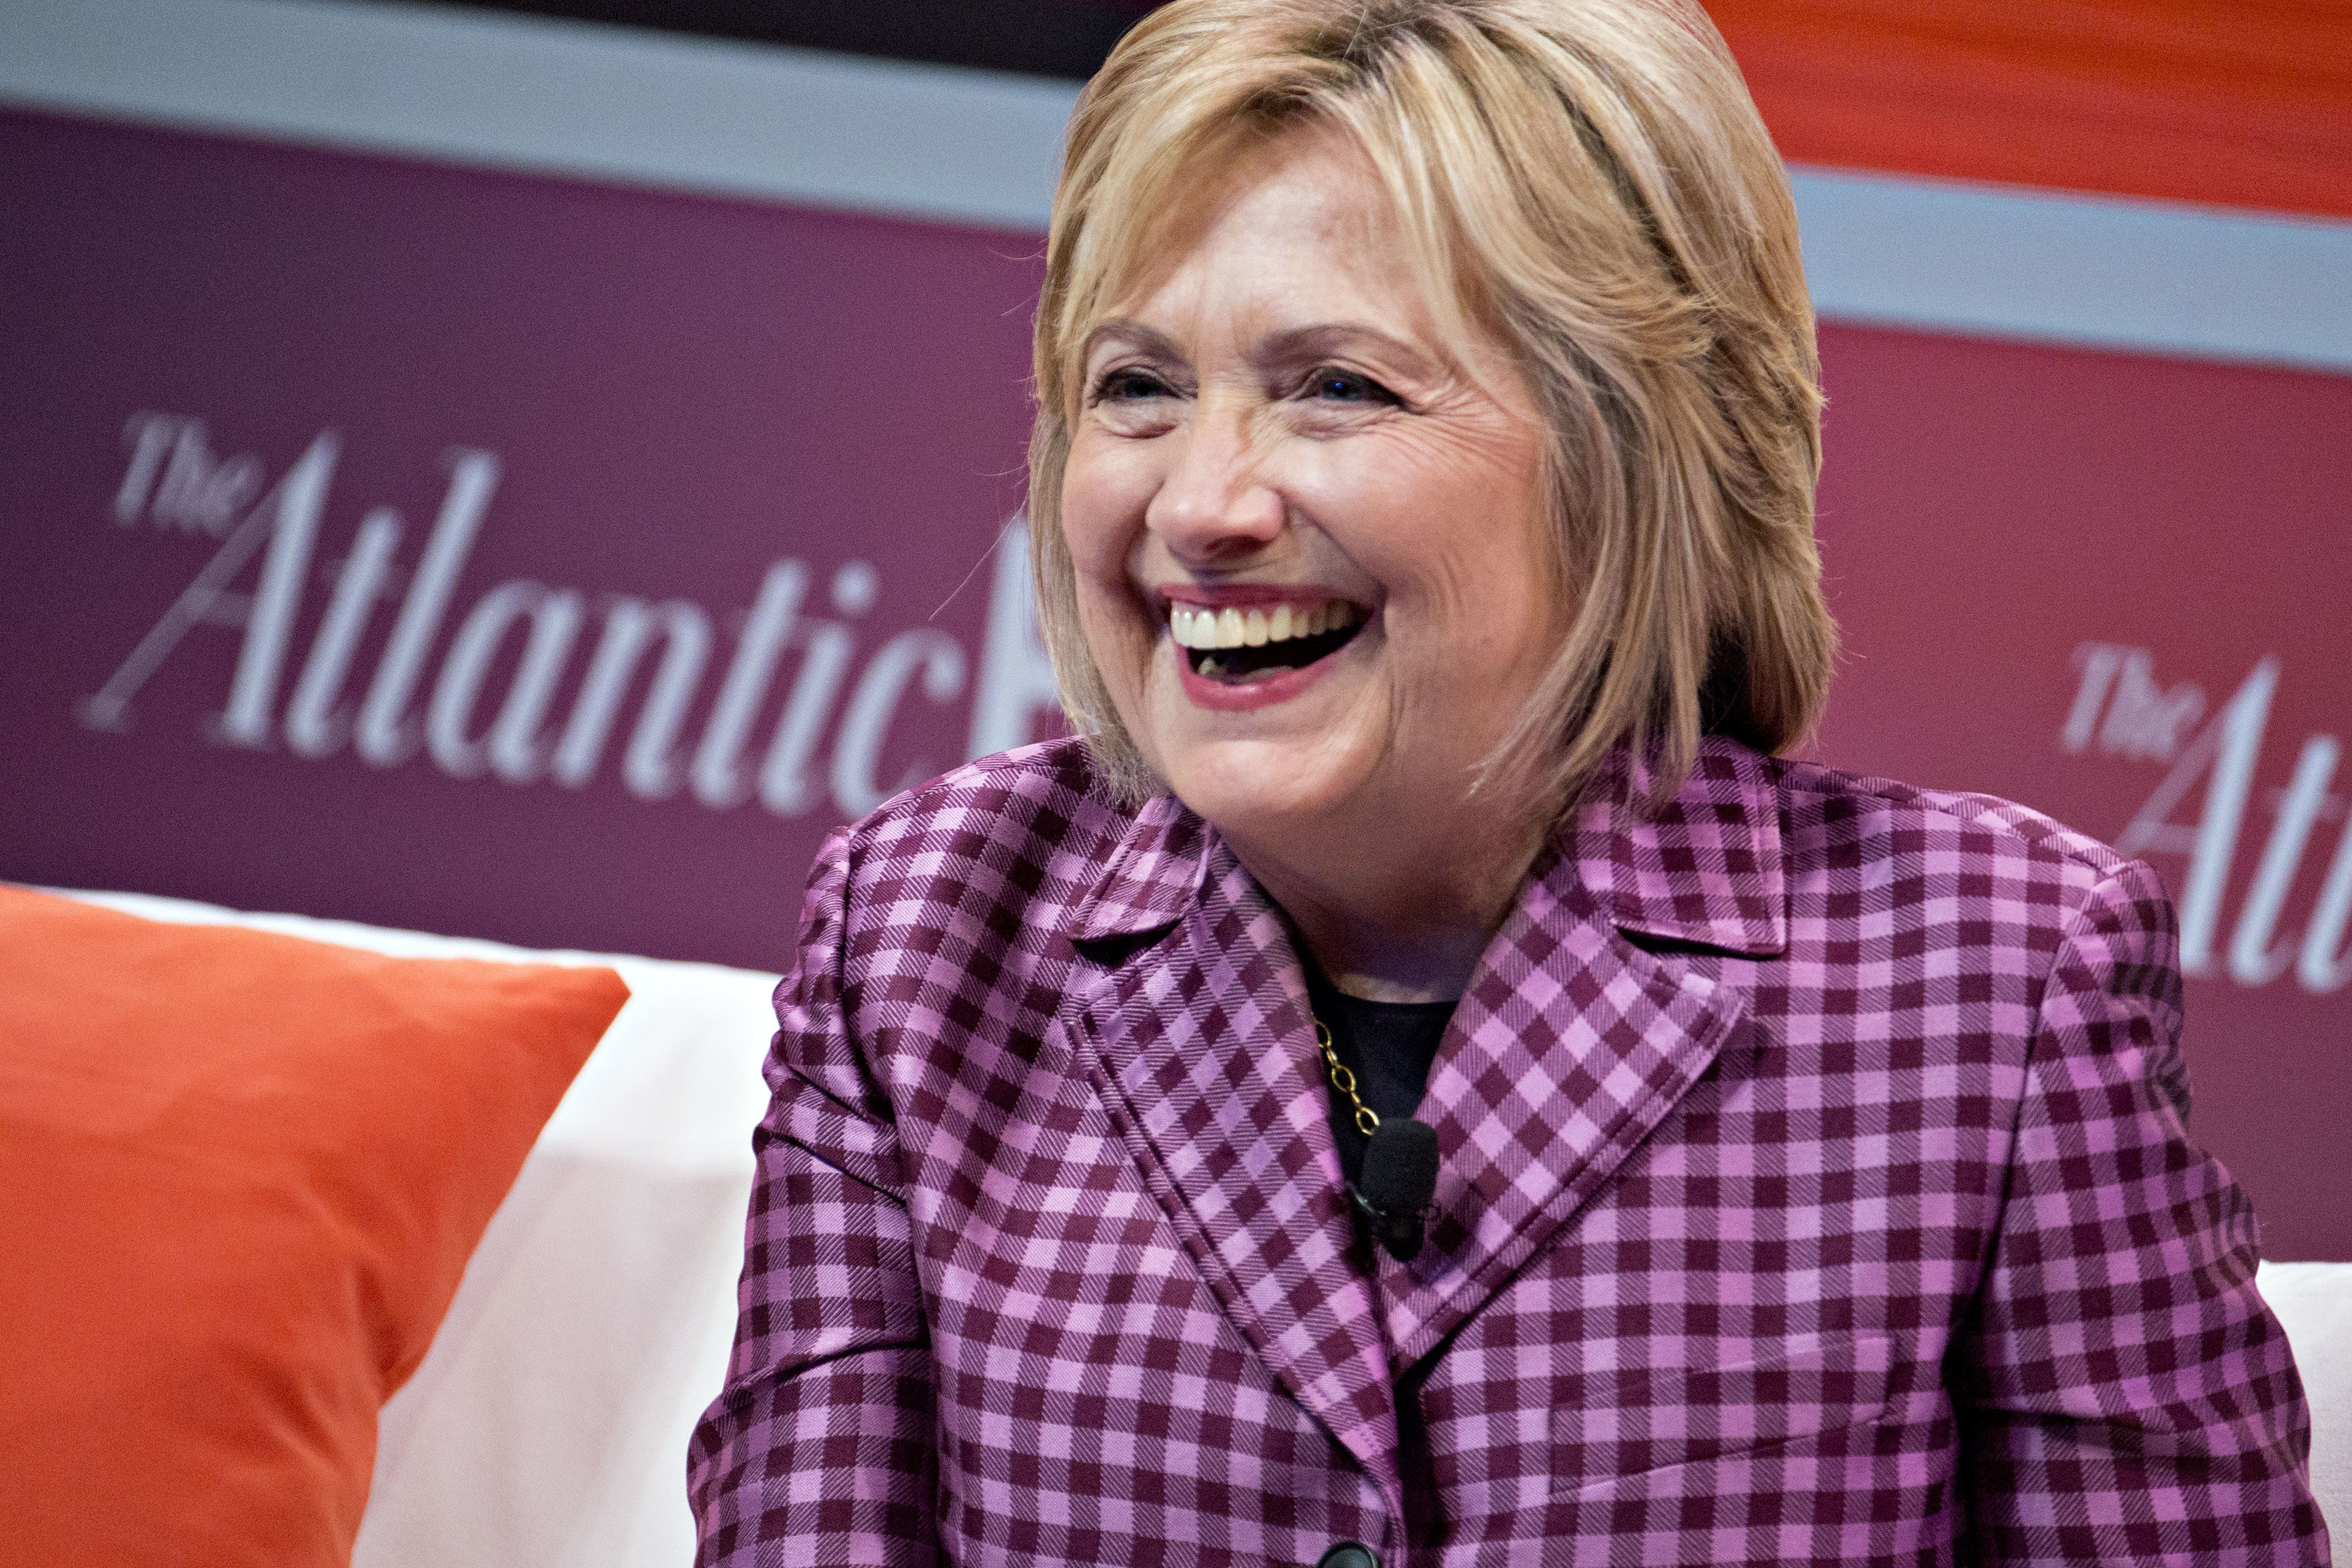 Hillary Clinton, former U.S. secretary of state, laughs during an Atlantic Festival discussion in Washington, D.C., U.S., on Tuesday, Oct. 2, 2018. Clinton said that Supreme Court nominee Brett Kavanaugh deserves a lot of laughter for his claim that revenge on behalf of the Clintons is one of the motives for opposition to his confirmation. Photographer: Andrew Harrer/Bloomberg via Getty Images